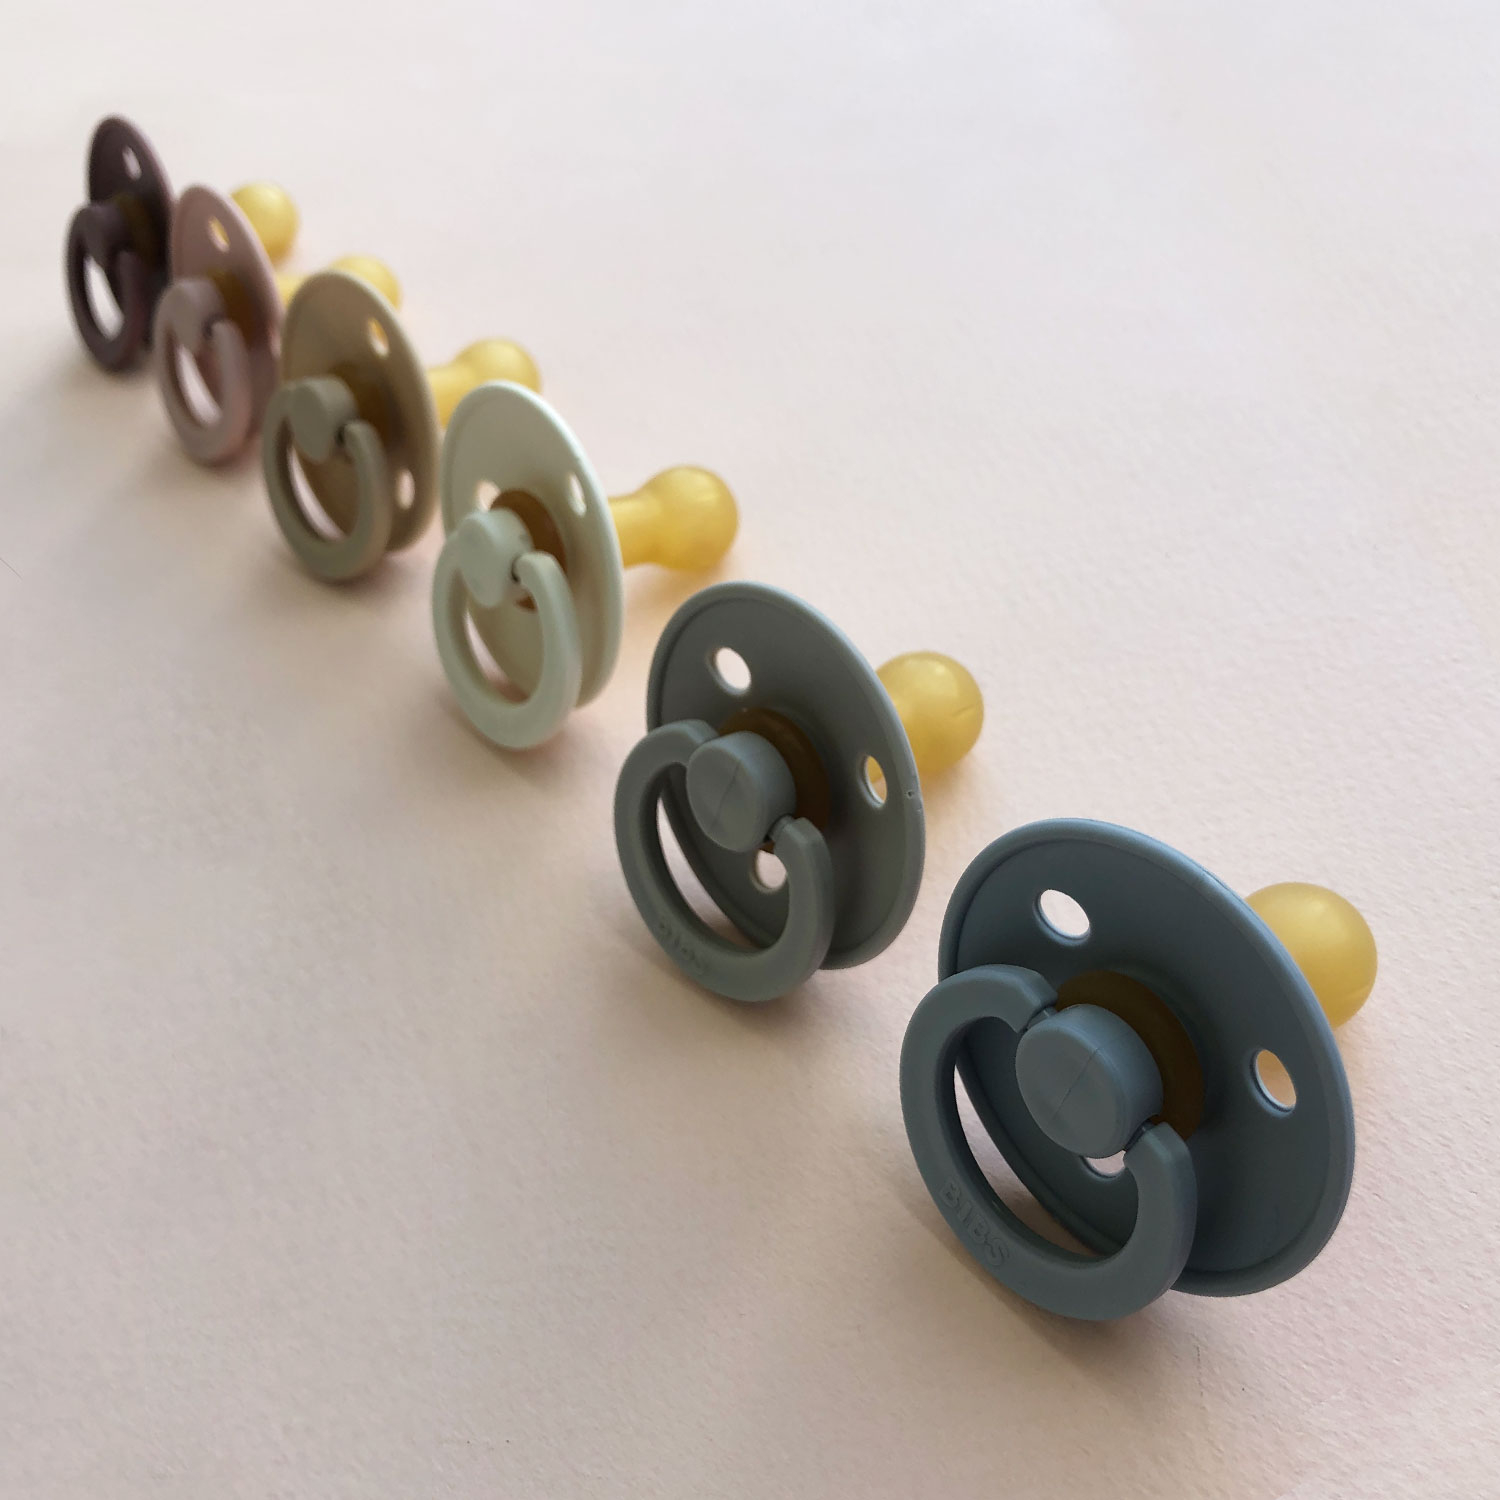 Bib's pacifiers - Picture by Design Hunger